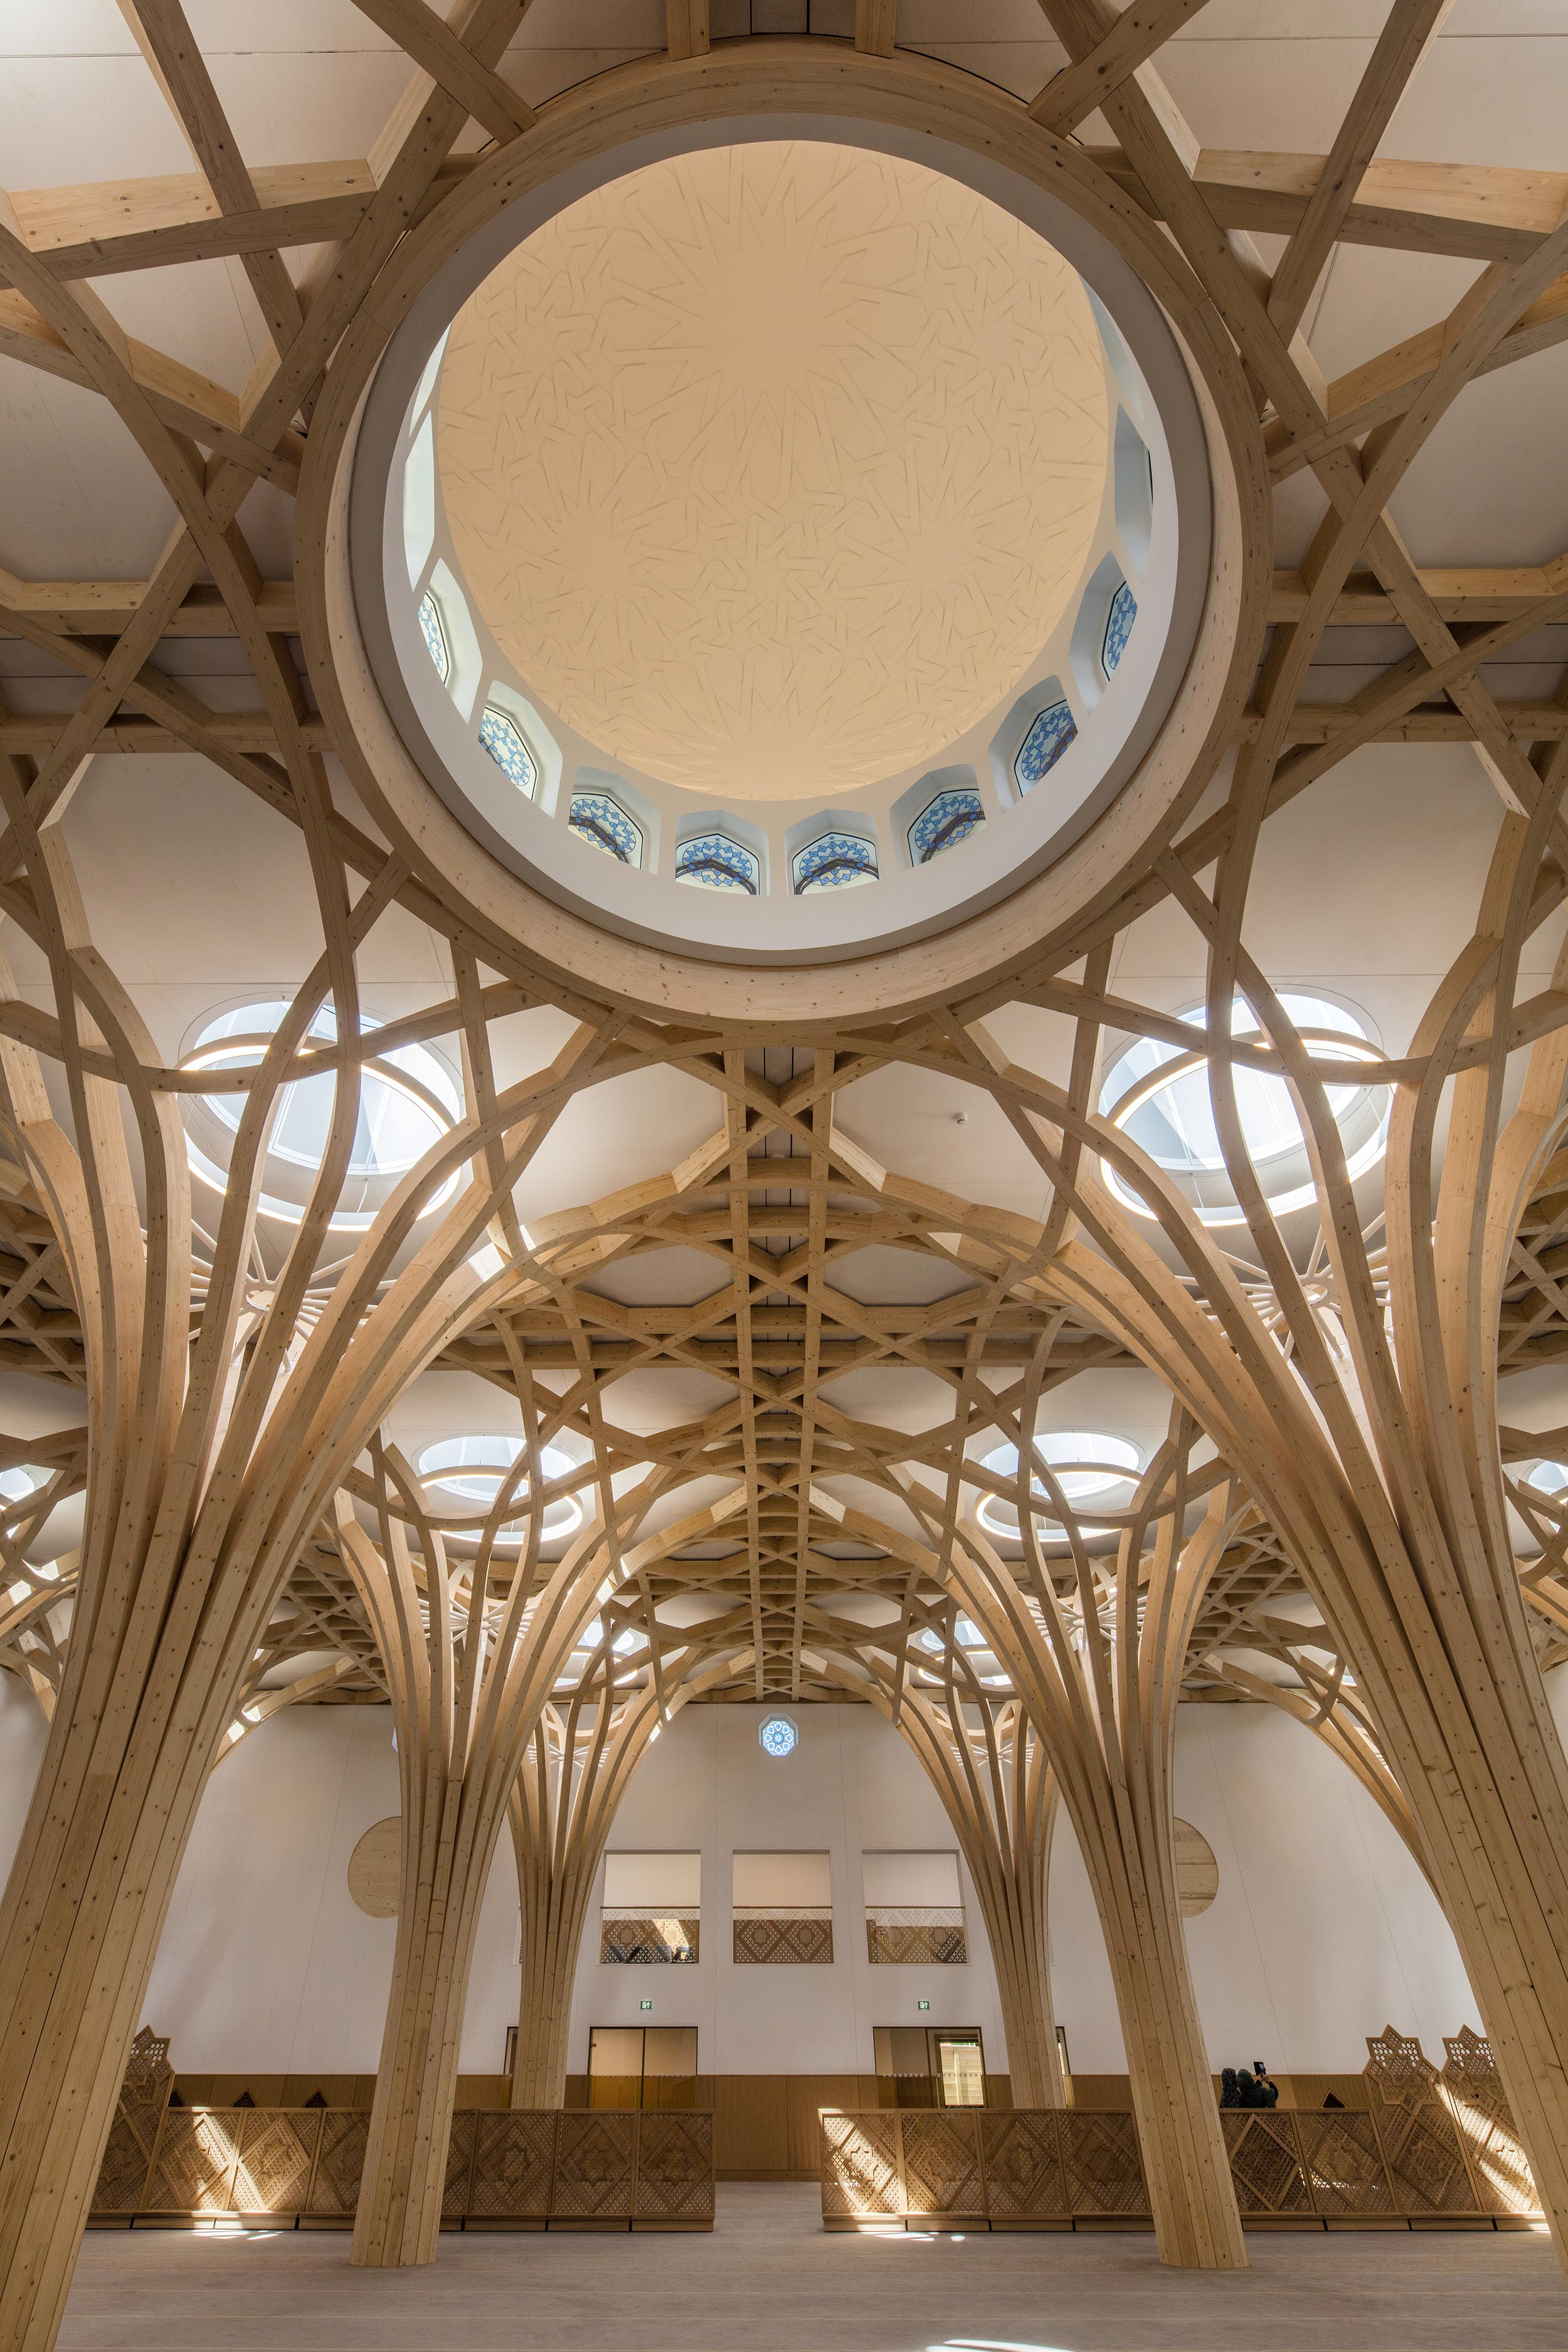 Cambridge mosque Prayer Hall and dome by Marks Barfield architects, photography by Morley von Sternberg